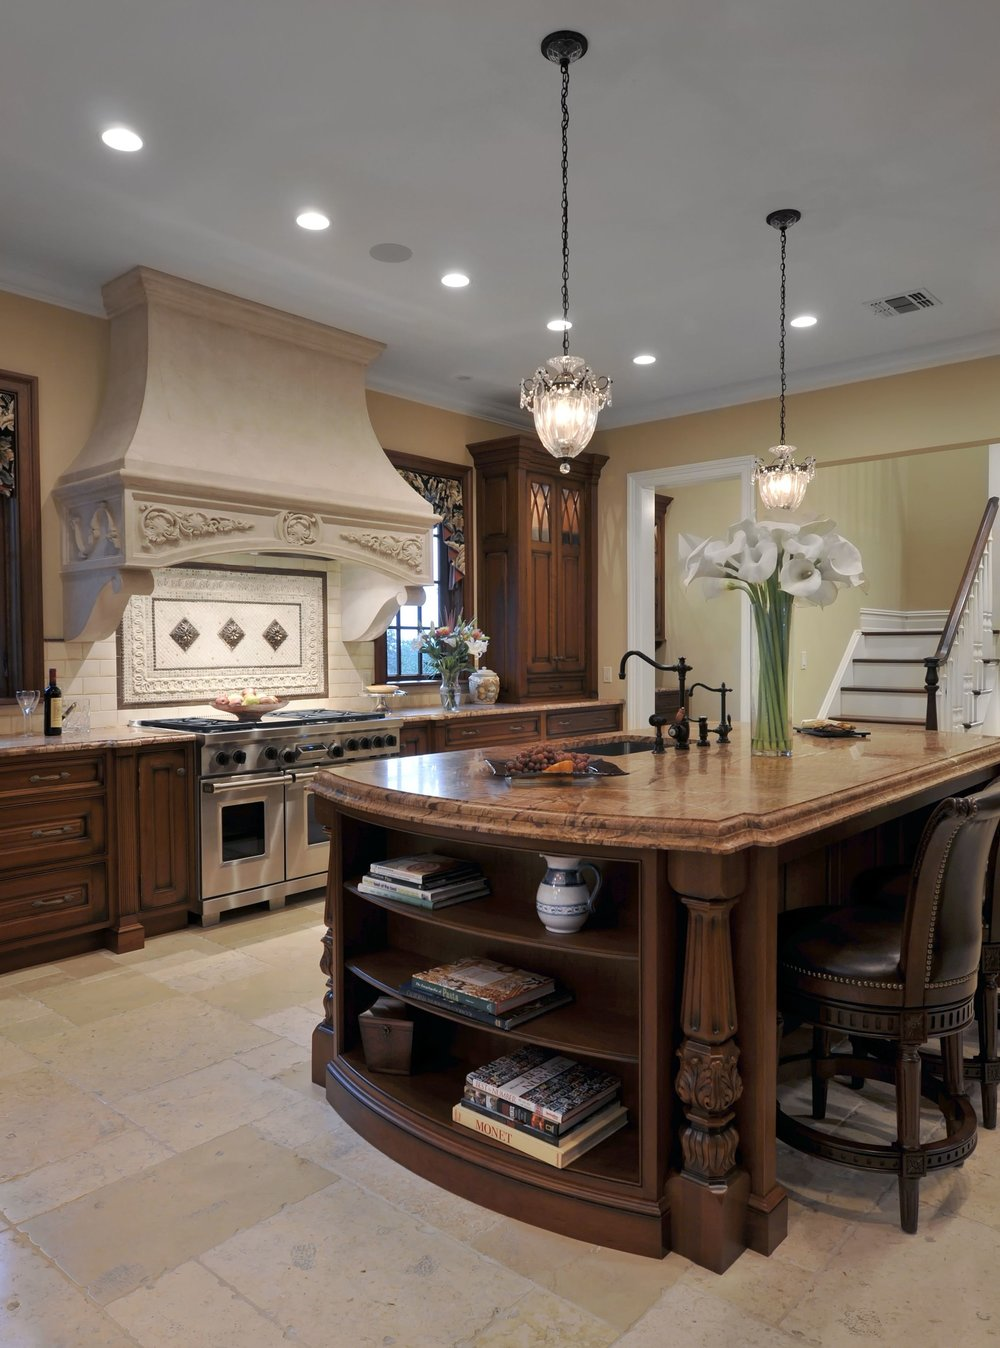 Traditional style kitchen with custom built center island